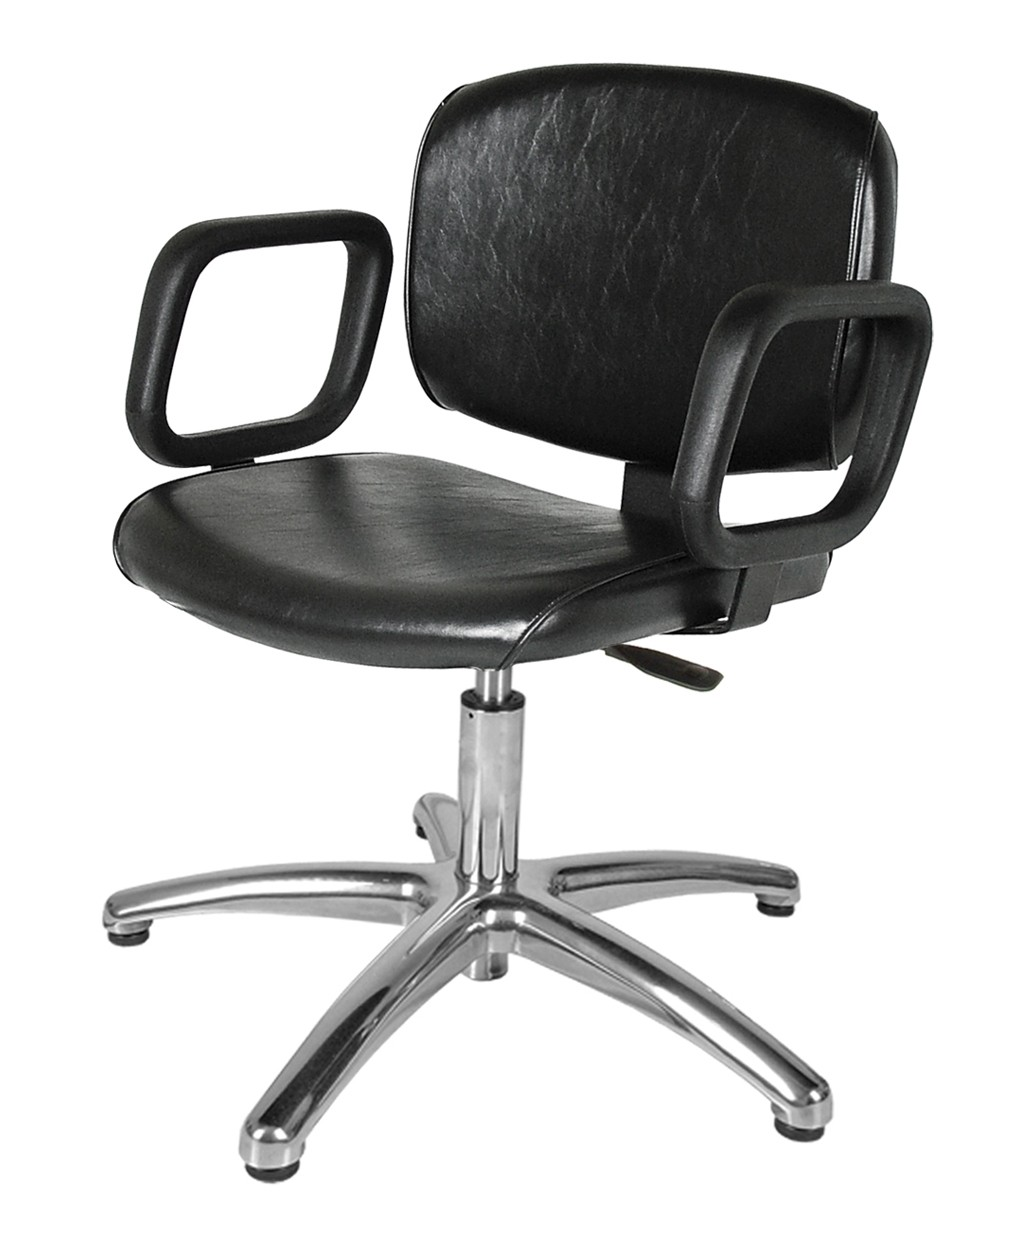 Collins QSE 1830 Spring-Back Shampoo Chair